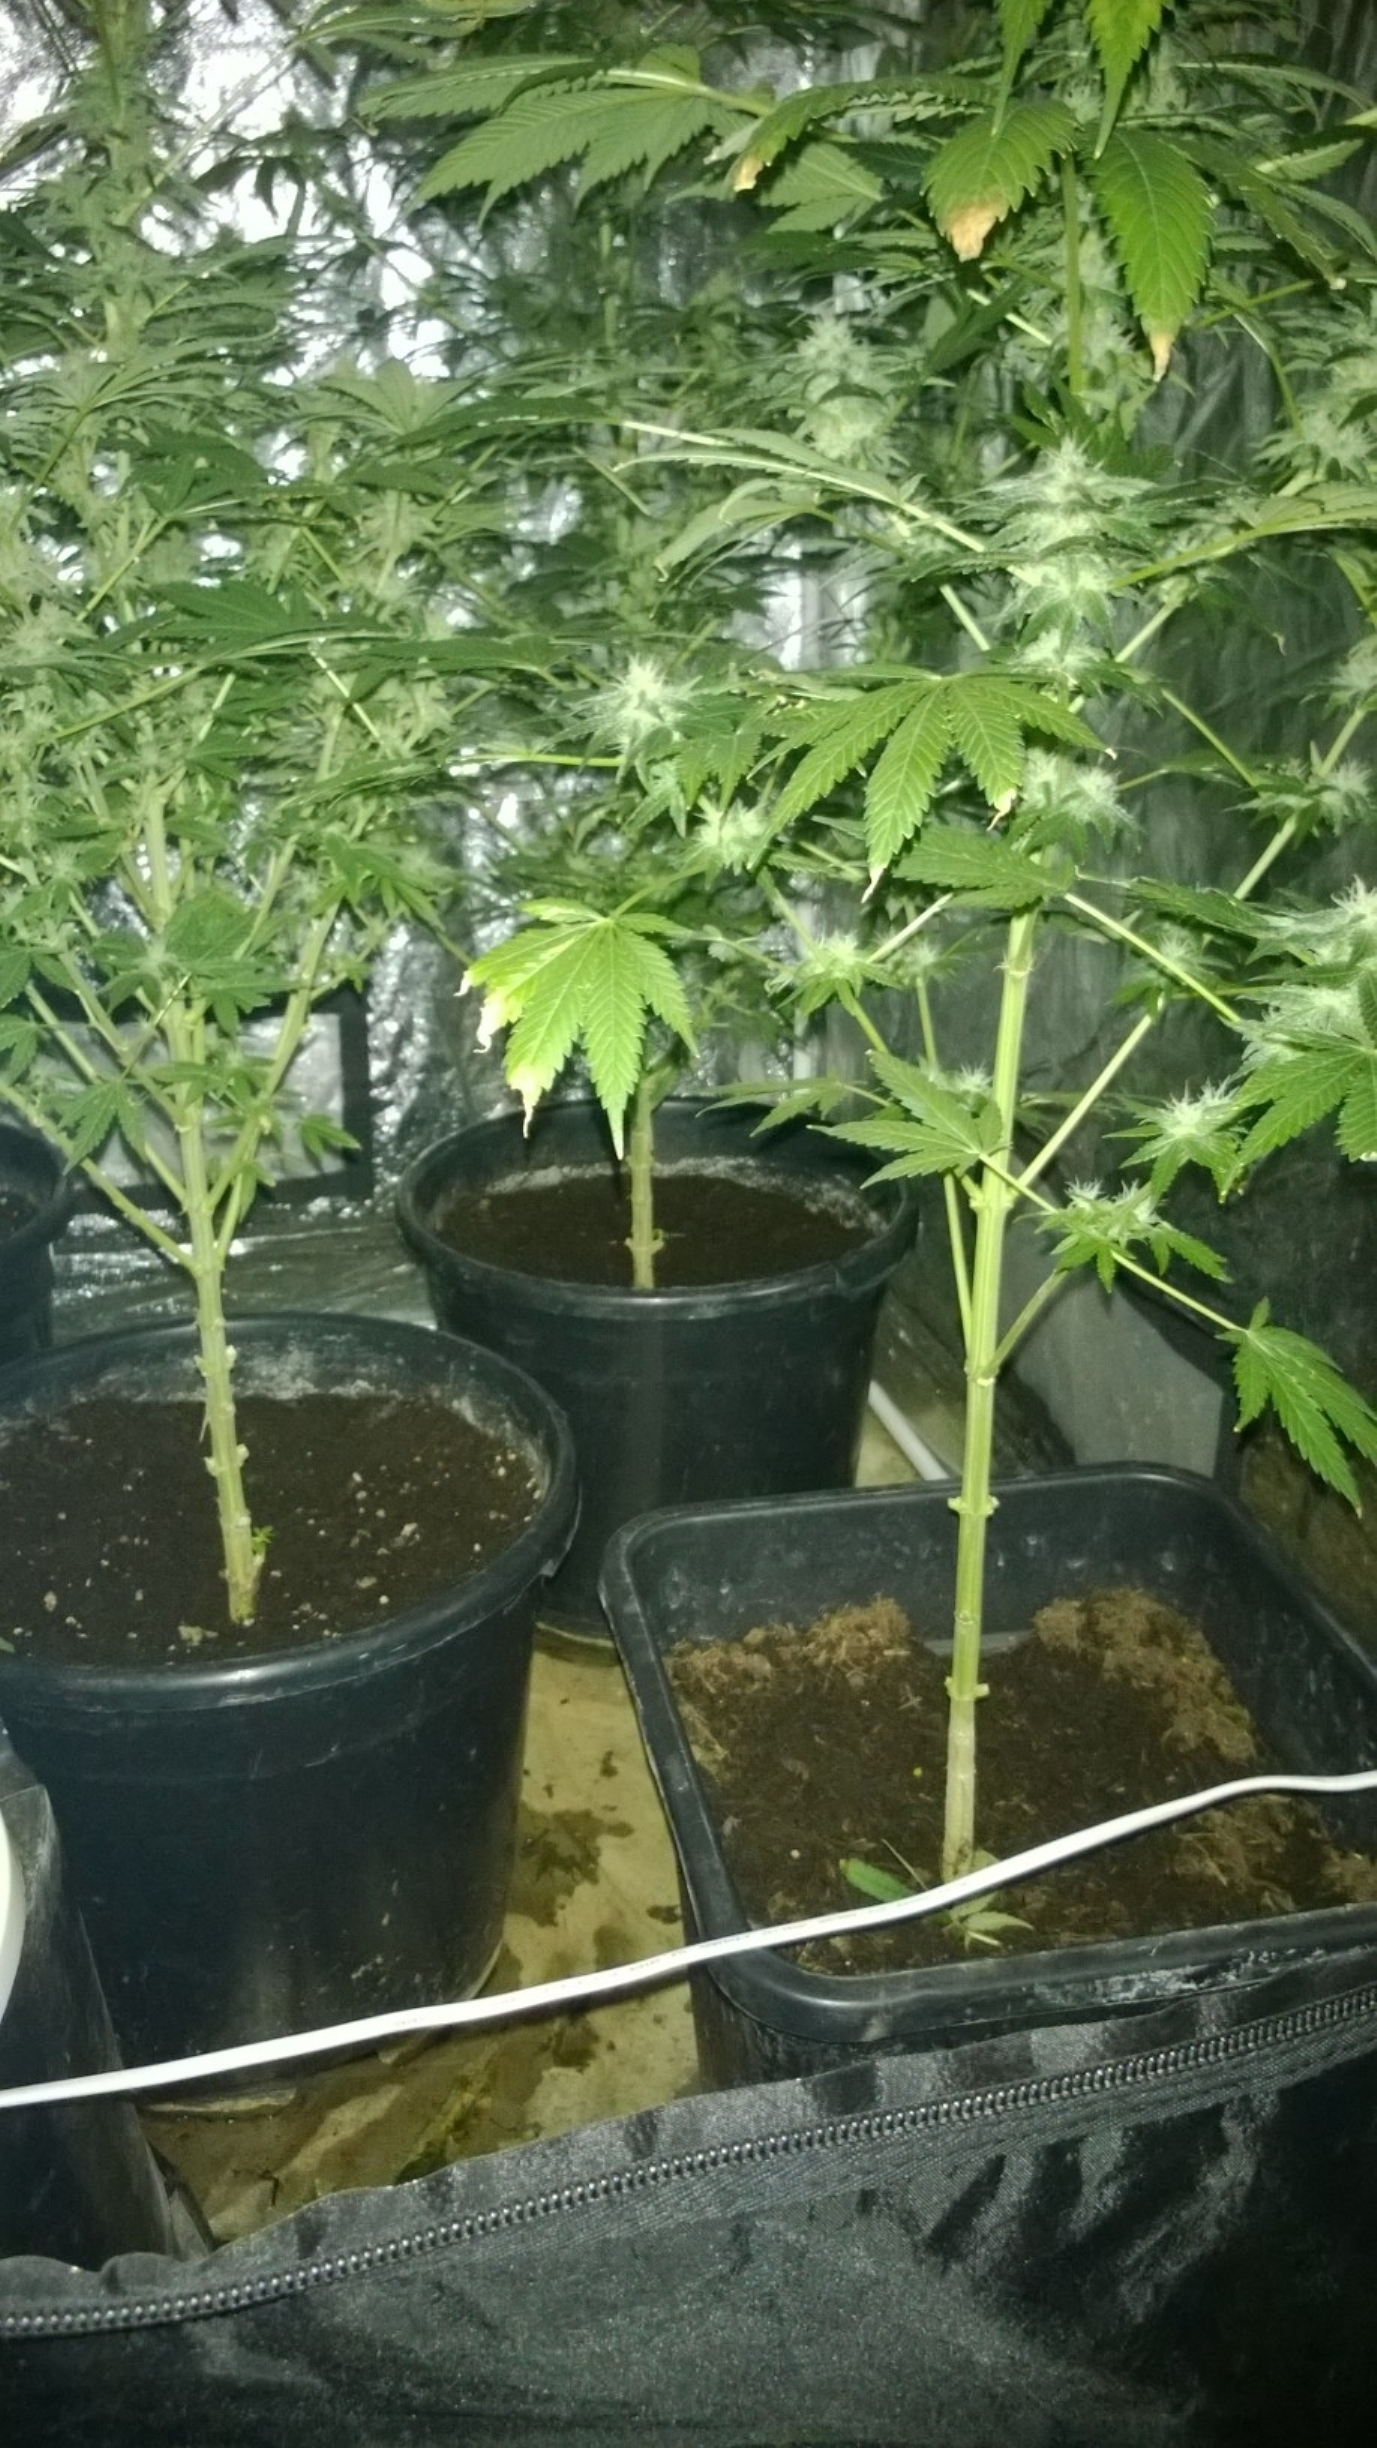 Cannabis plants like these were found in an upstairs bedroom at Philip Newnham's home